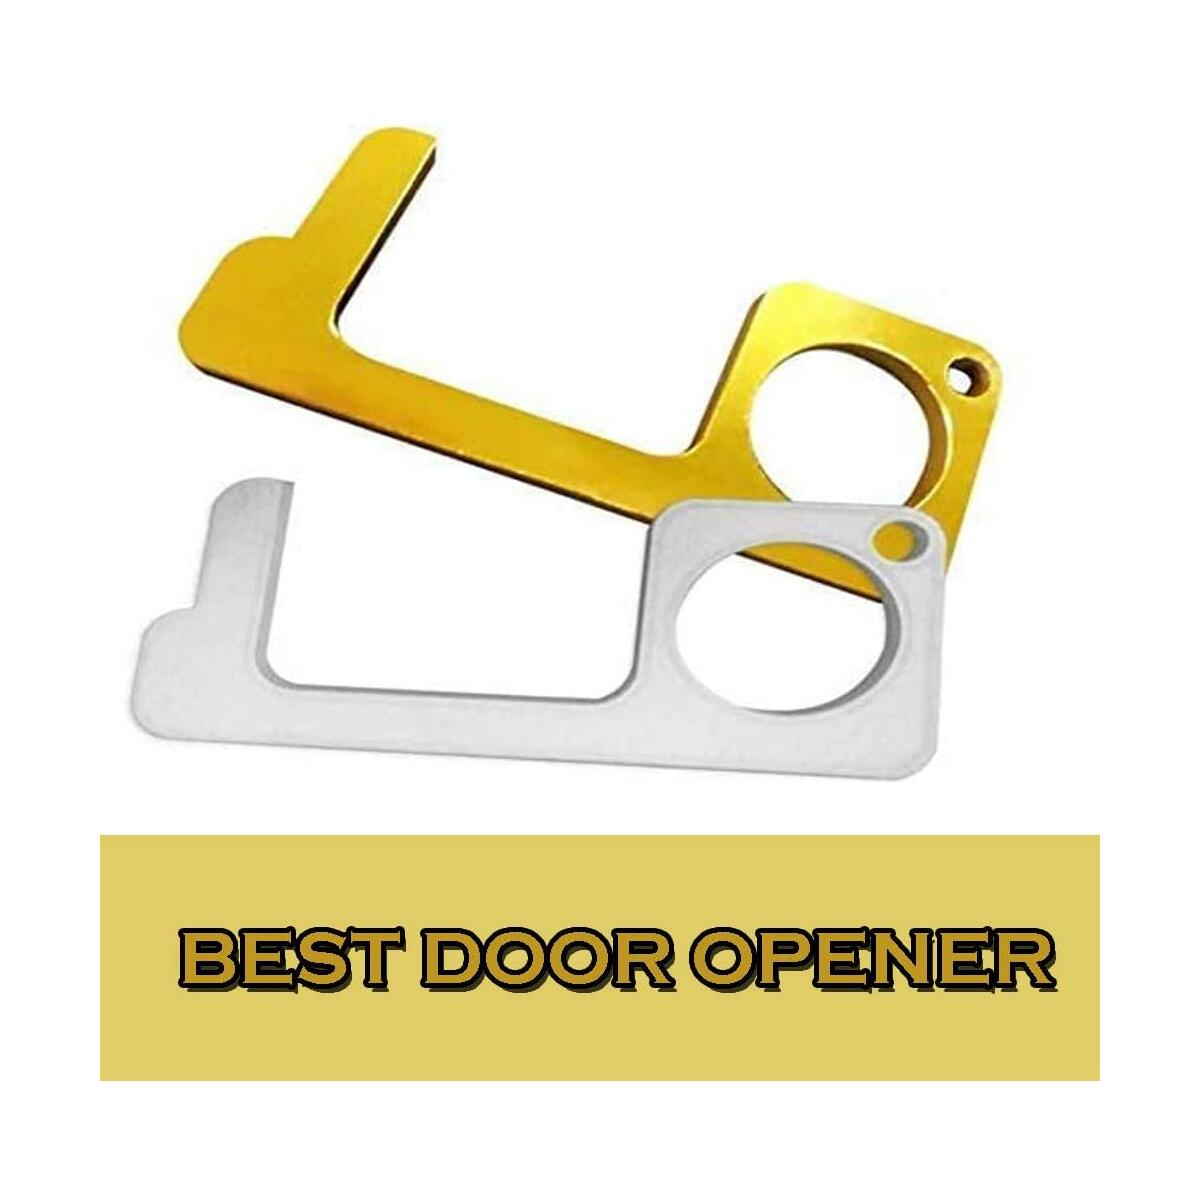 Brass Door Opener, Hygiene Hand Brass Door Opener, Non-Contact Key Chain, Outdoor Public Door Handle Opener, Brass Door Opener for Infected Surfaces, Closer Stylus Keep Hand Clean and Safe(Pack of 2)